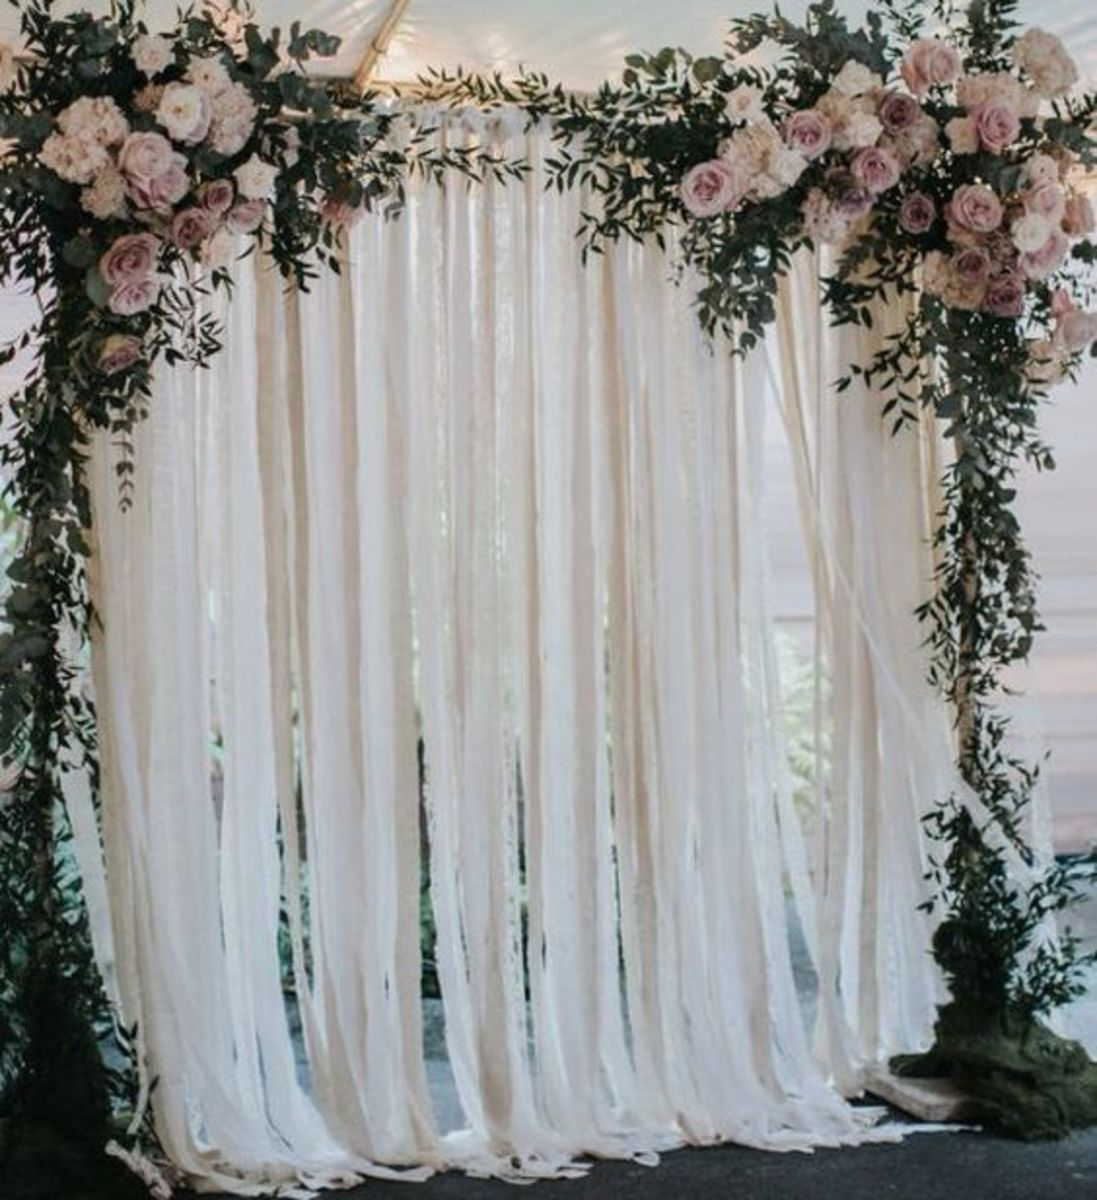 Lace by the yard can be used to create a backdrop for your ceremony or photo shoot